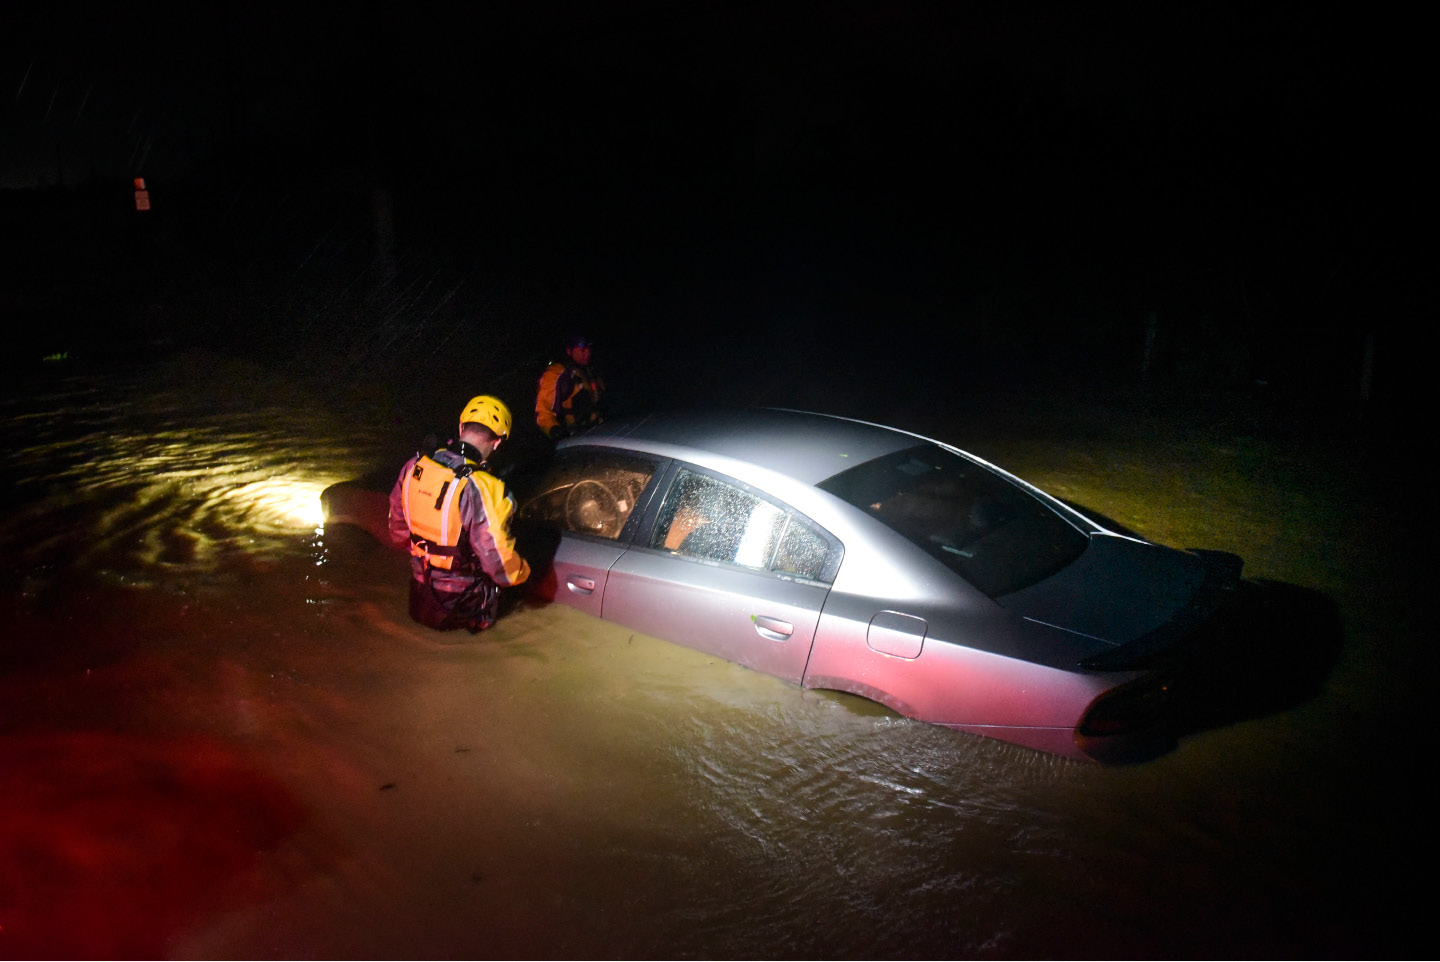 Rescue staff from the Municipal Emergency Management Agency investigate an empty flooded during the passage of Hurricane Irma through the northeastern part of the island in Fajardo, Puerto Rico, Wednesday, Sept. 6, 2017. Hurricane Irma lashed Puerto Rico with heavy rain and powerful winds, leaving nearly 900,000 people without power as authorities struggled to get aid to small Caribbean islands already devastated by the historic storm.(AP Photo/Carlos Giusti)